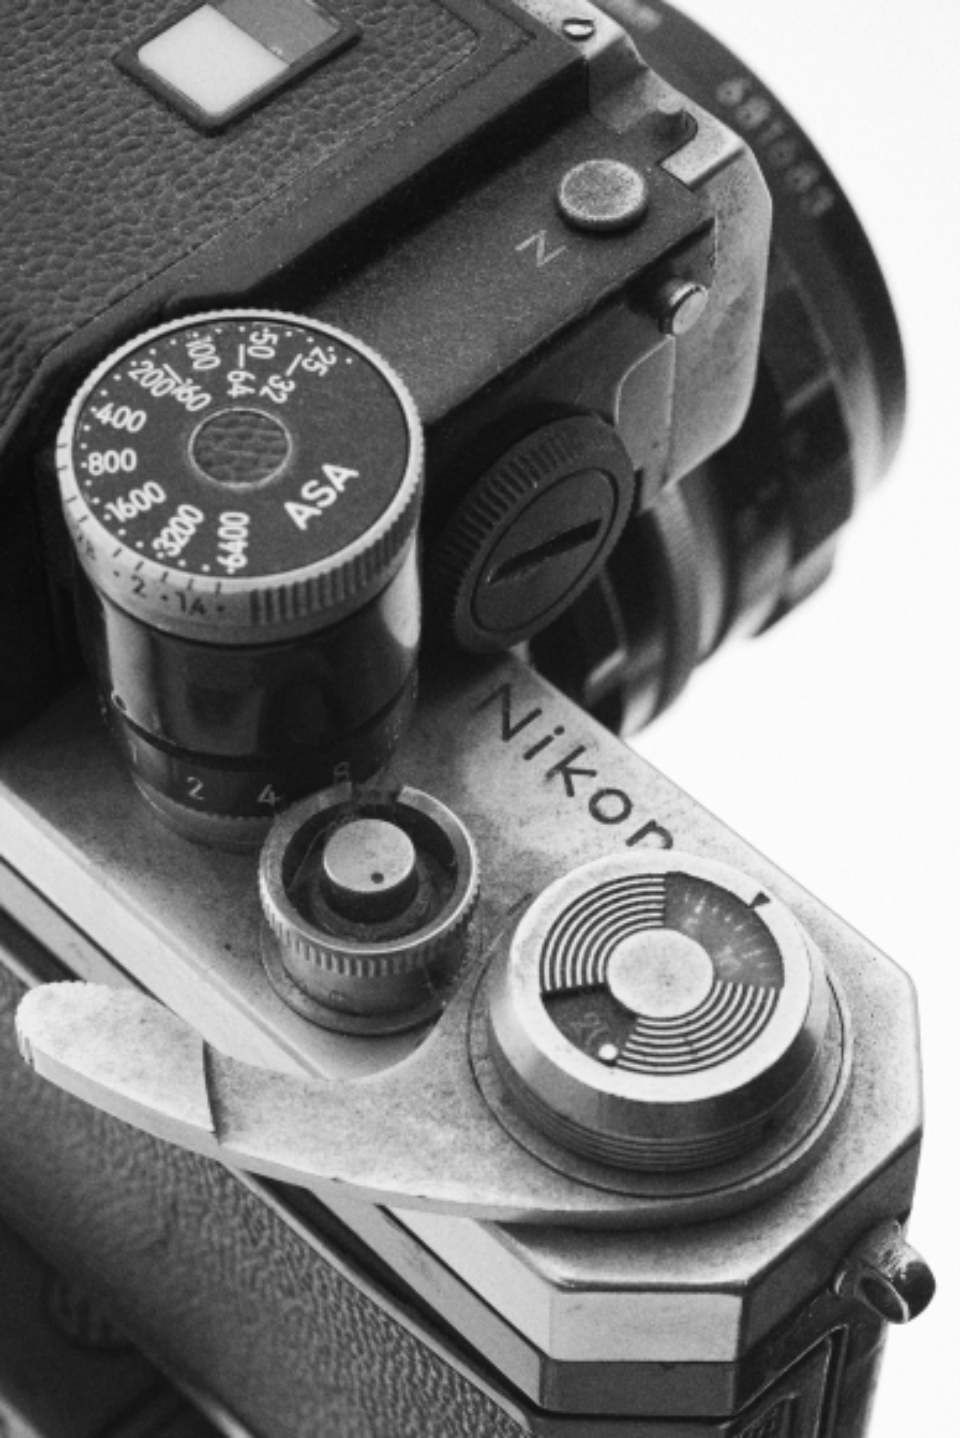 classic camera vintage photography photographer hobby professional retro film slr monochromatic view close up top buttons lens gear